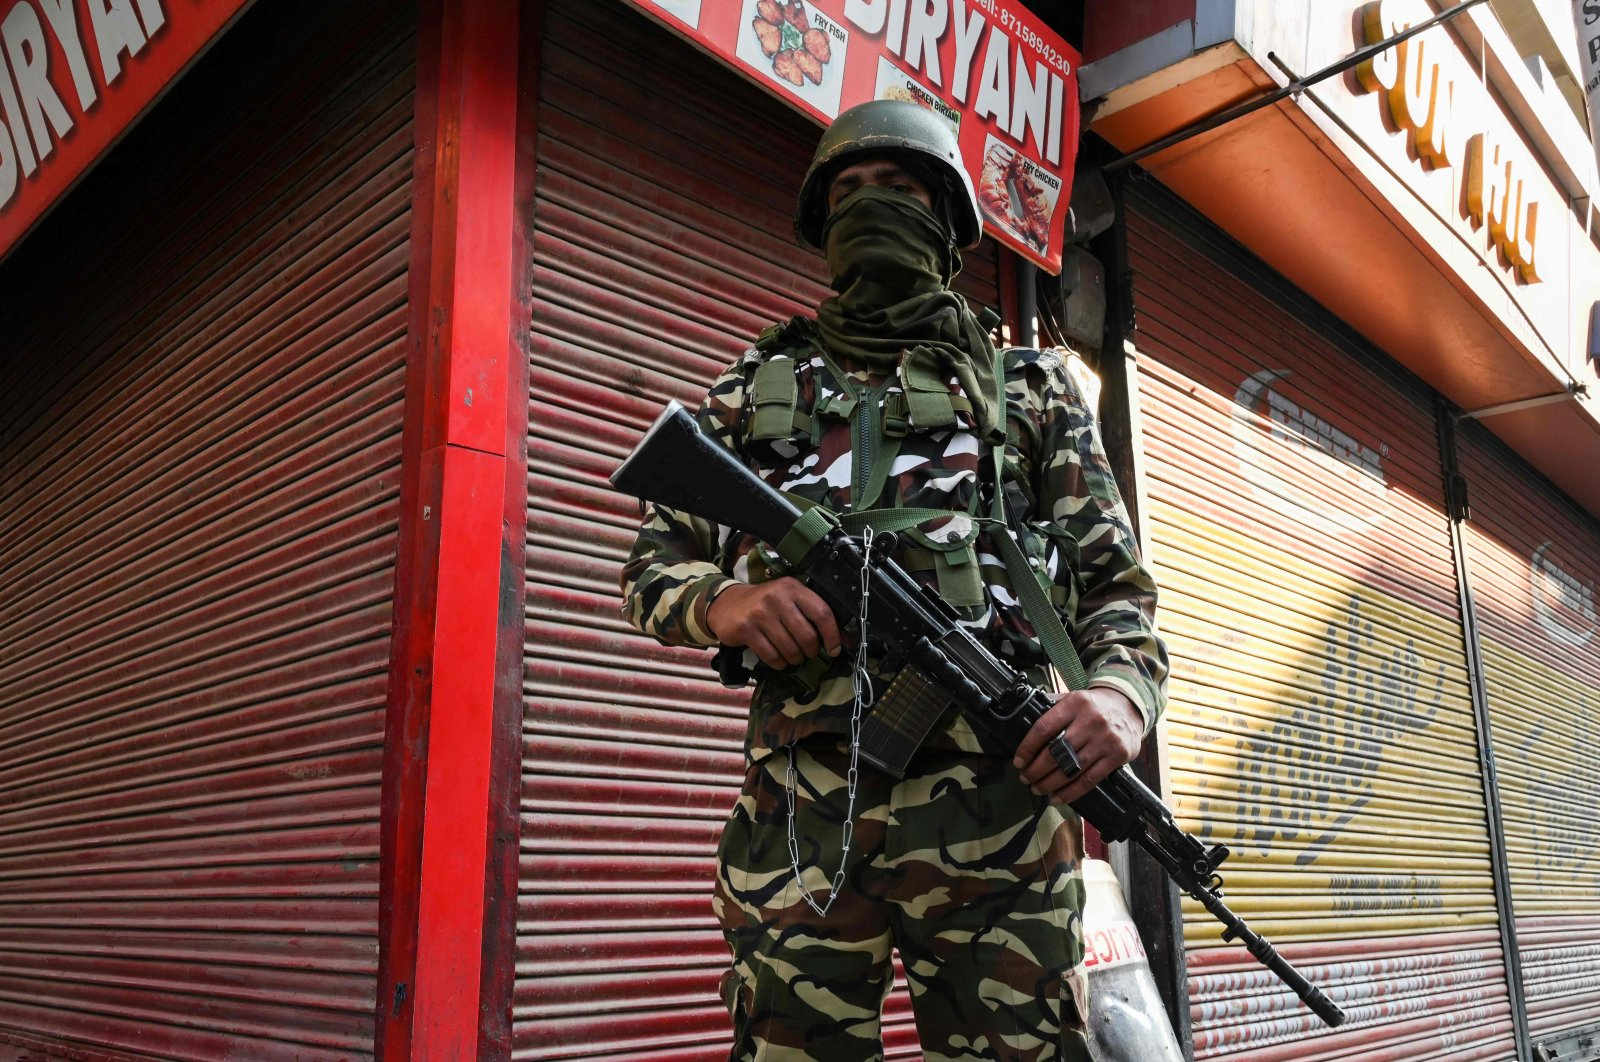 A paramilitary soldier stands guard at a street on the one-year anniversary of the restive region being stripped of its autonomy, Srinagar, Aug. 5, 2020. (AFP Photo)